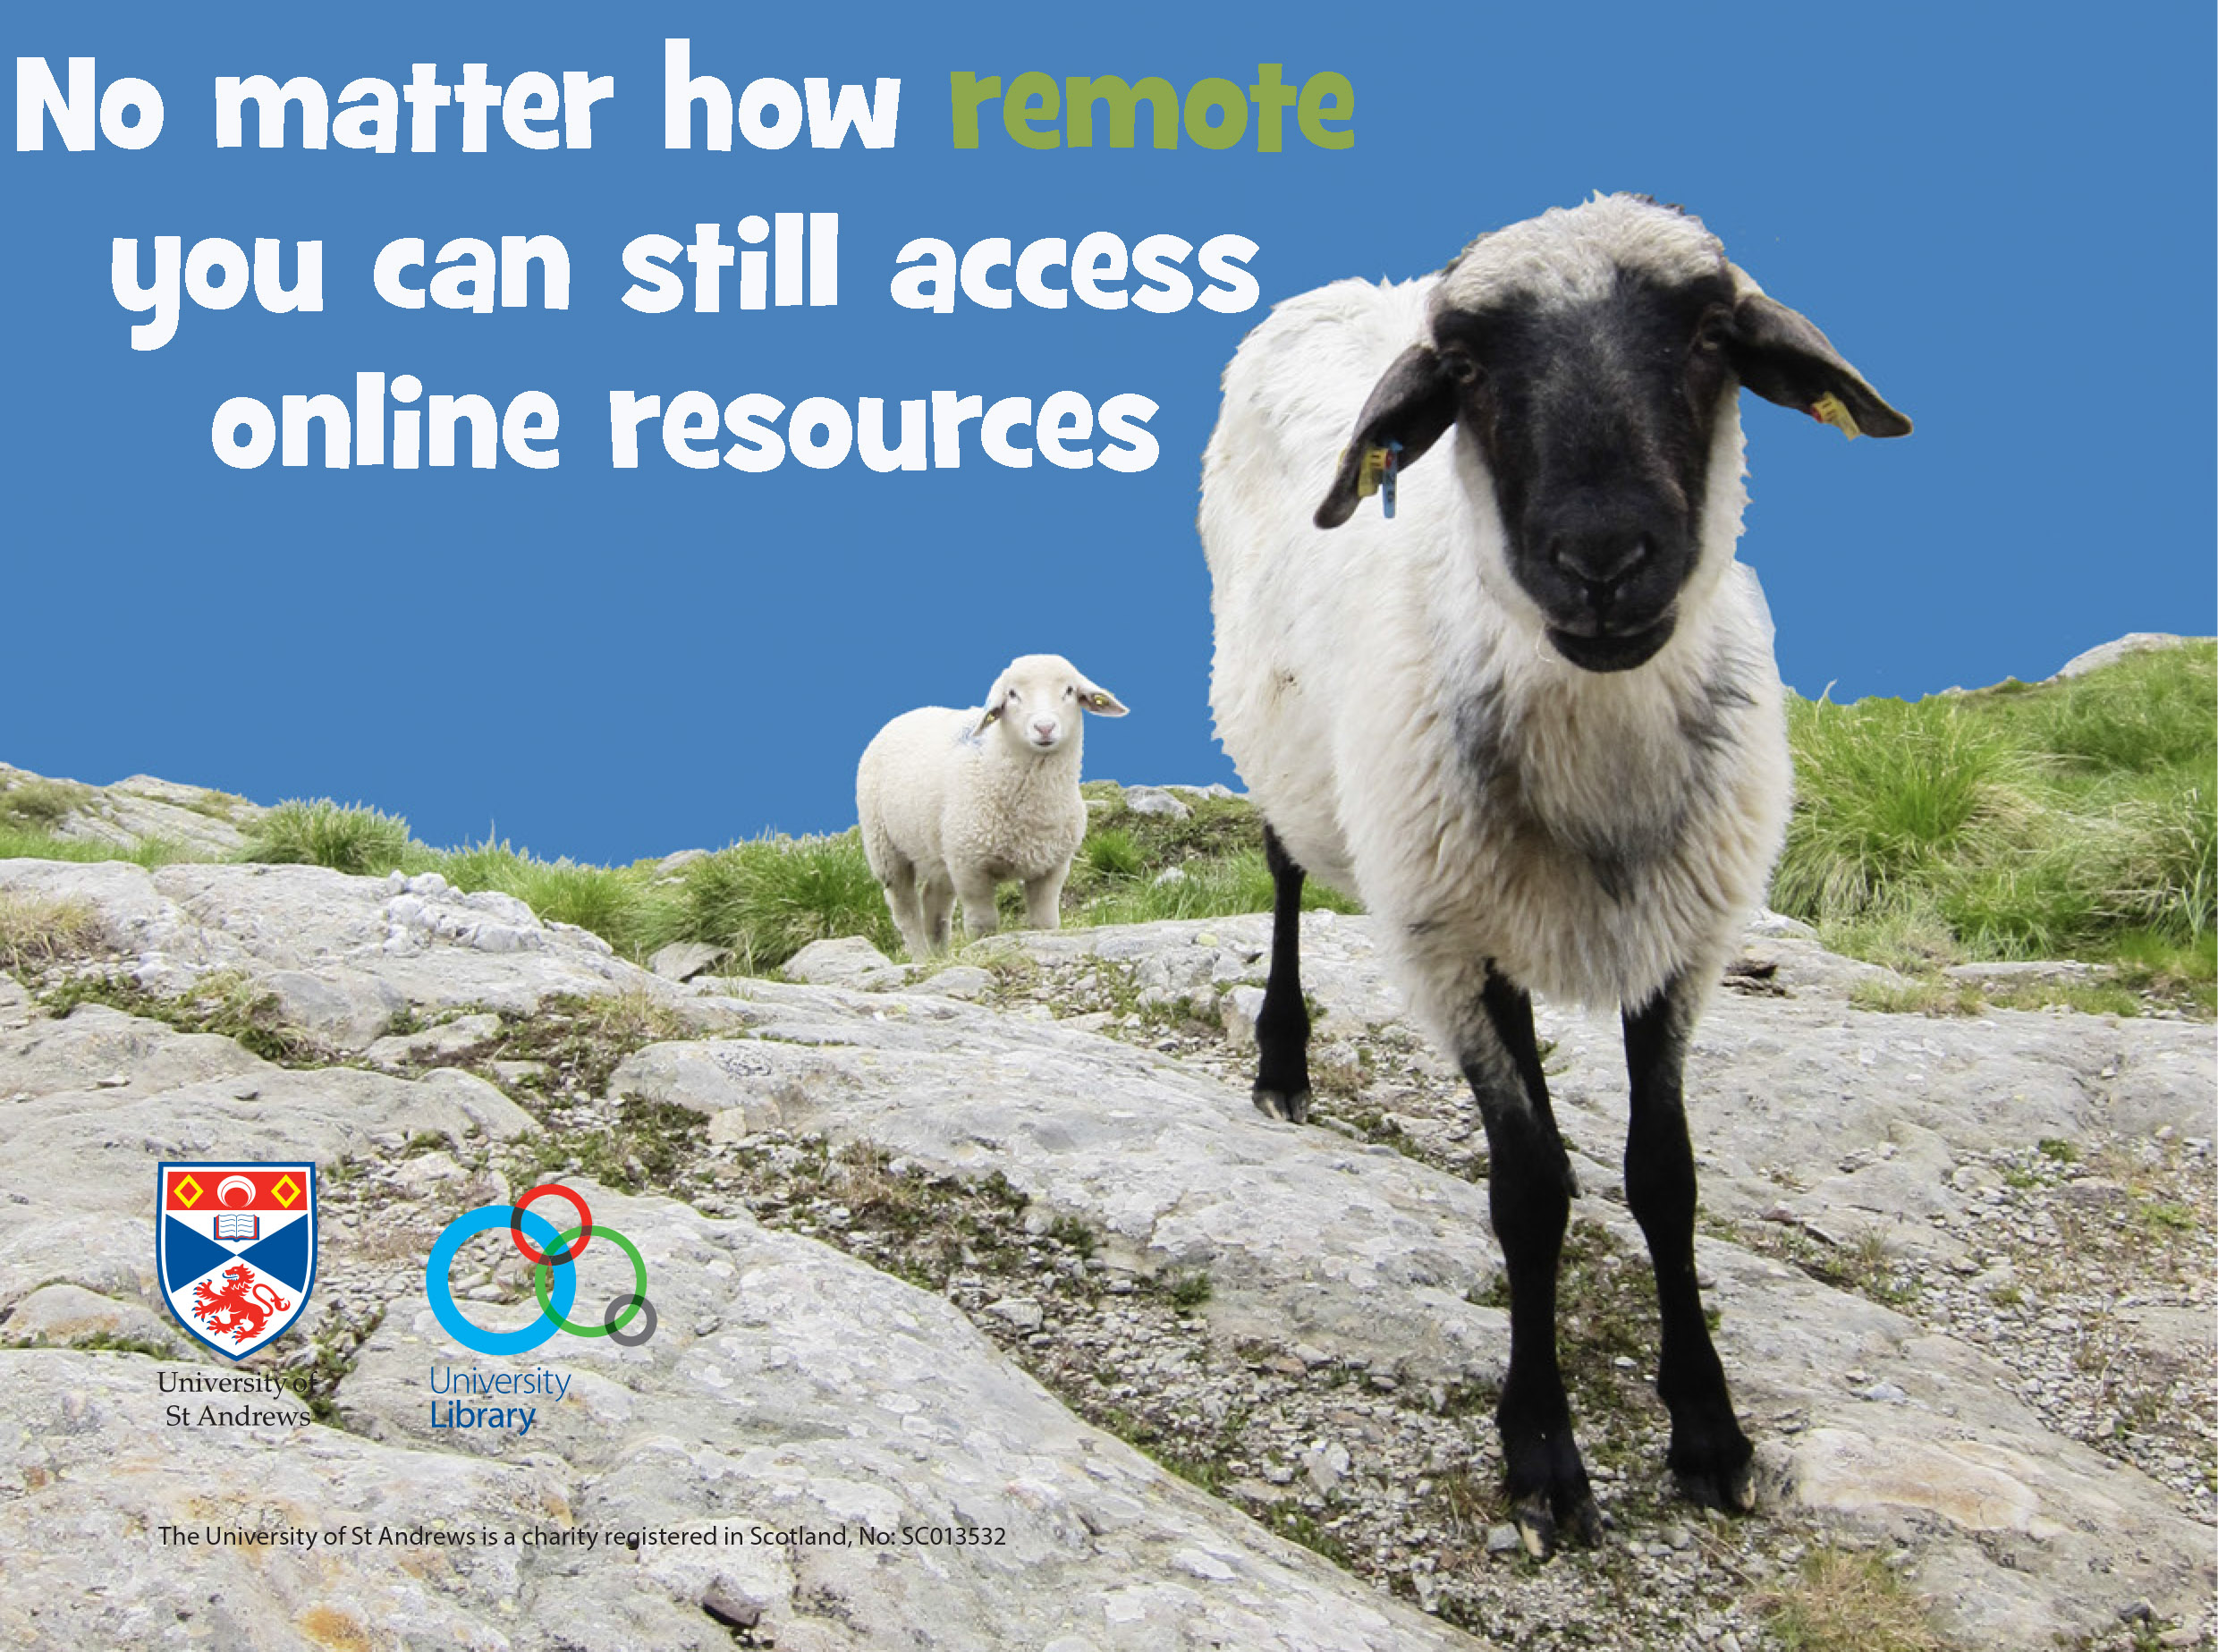 Picture of sheep - No matter how remote you can still access online resources